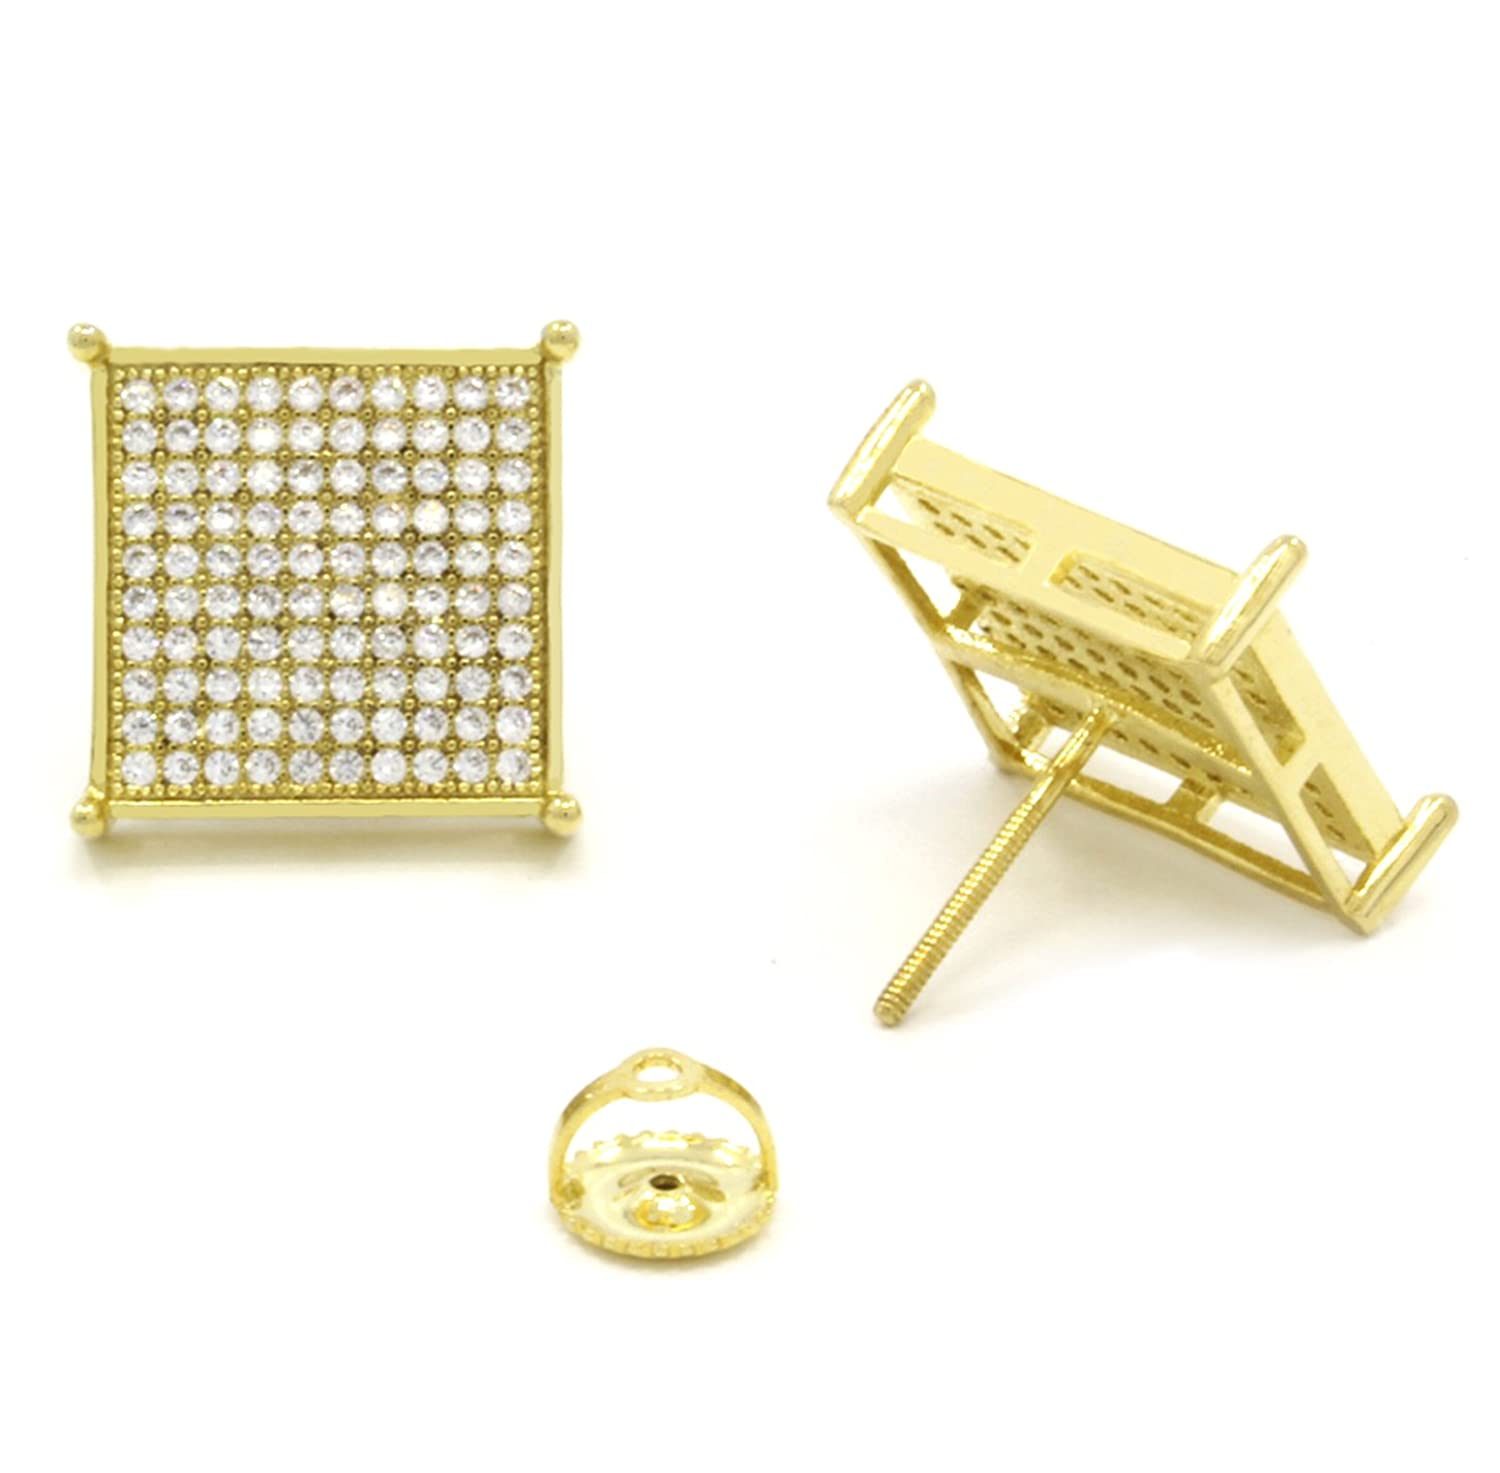 Out Square Stud Earrings Gold Square Stud Earrings